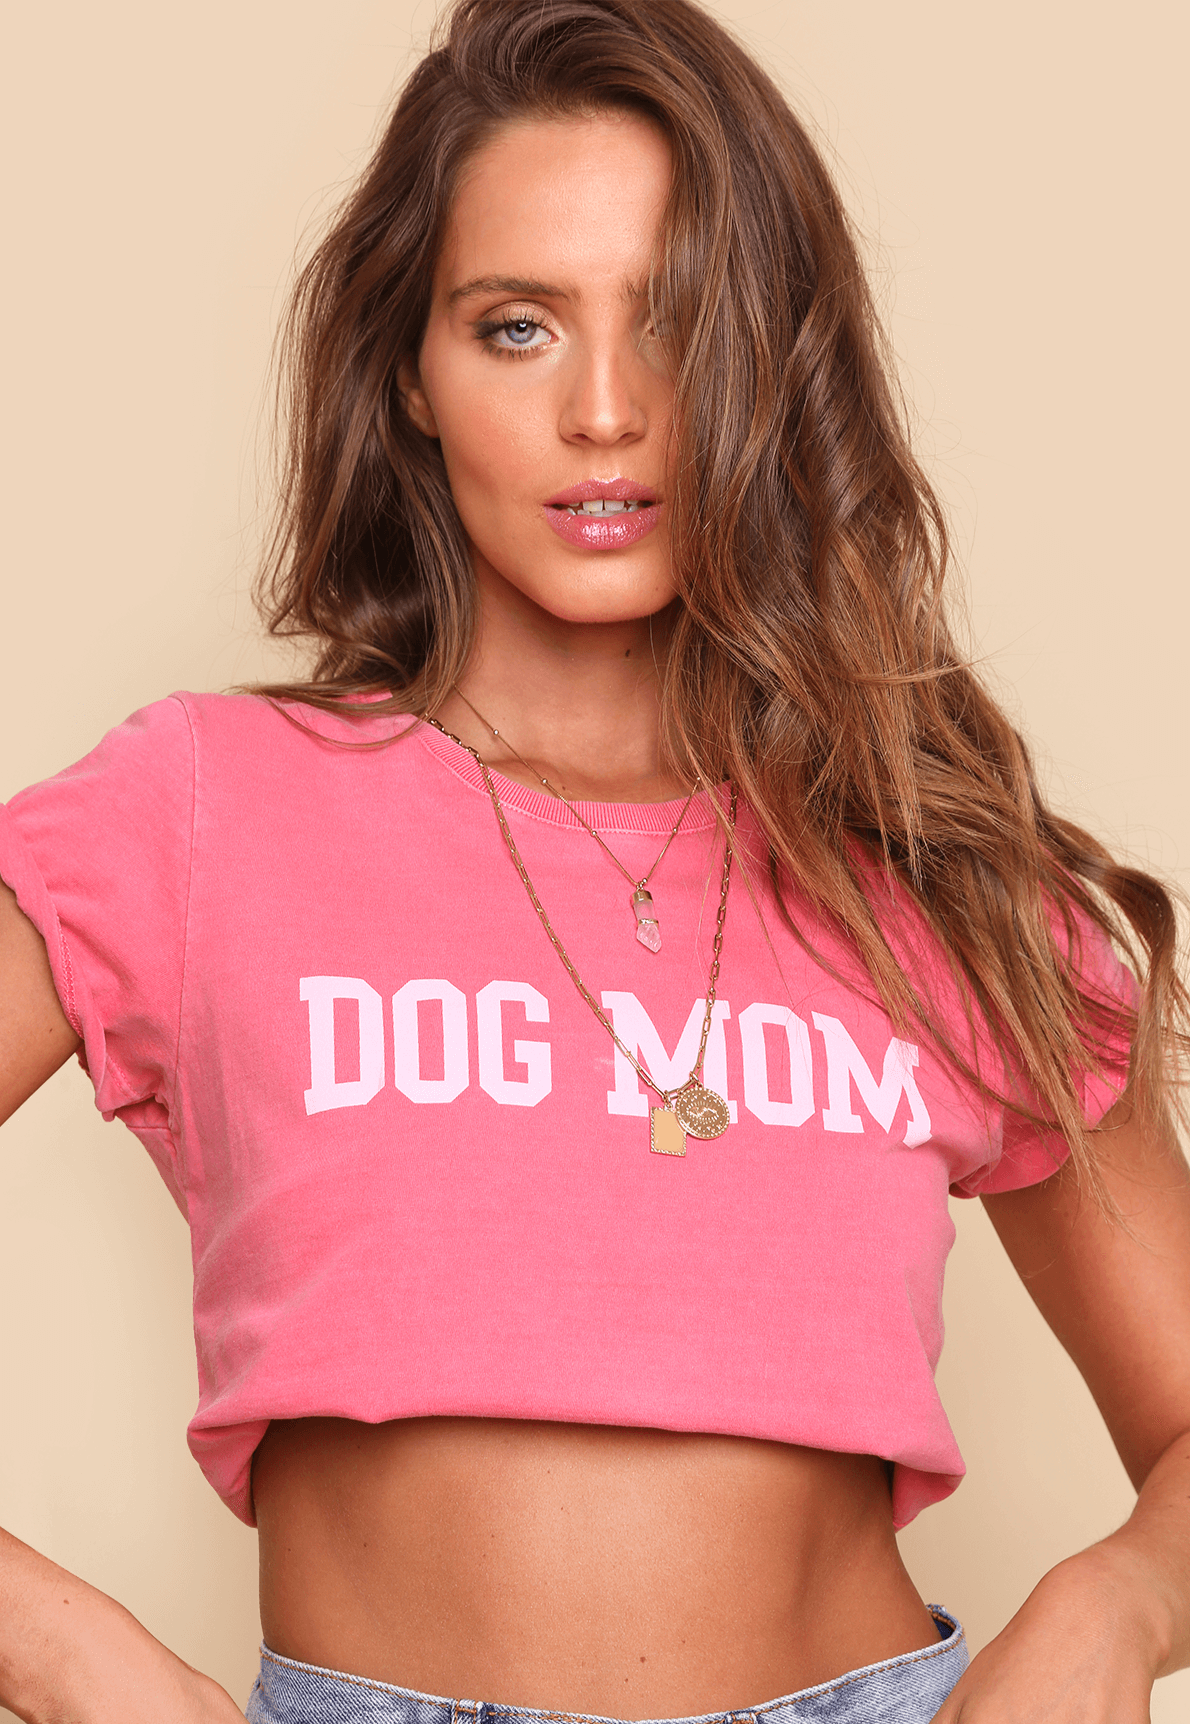 31182-T-Shirt-Mundo-Lolita-Feminina-Rosa-Dog-Mom-05